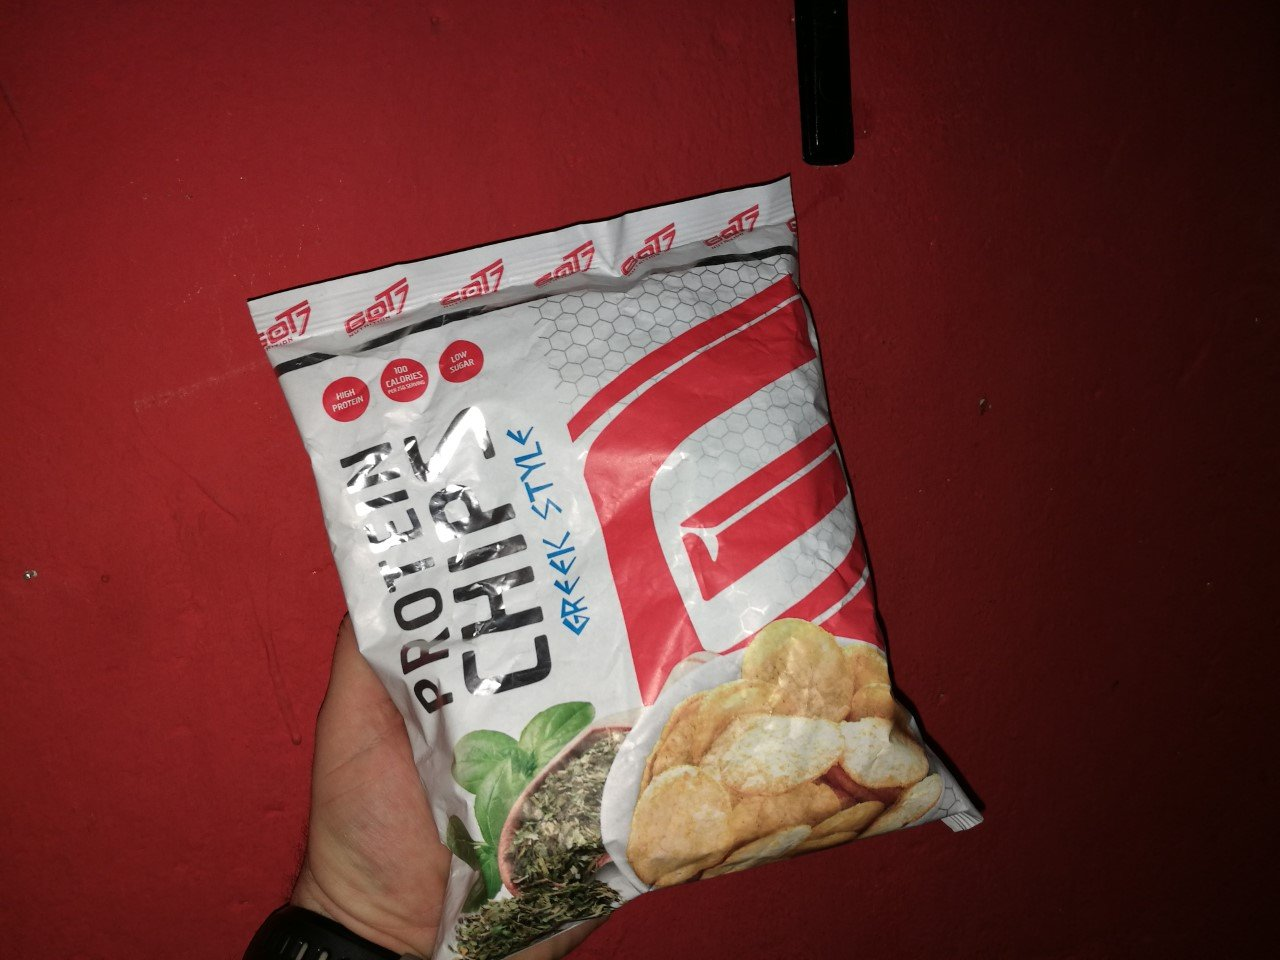 GOT7 Protein Chips - Die Review